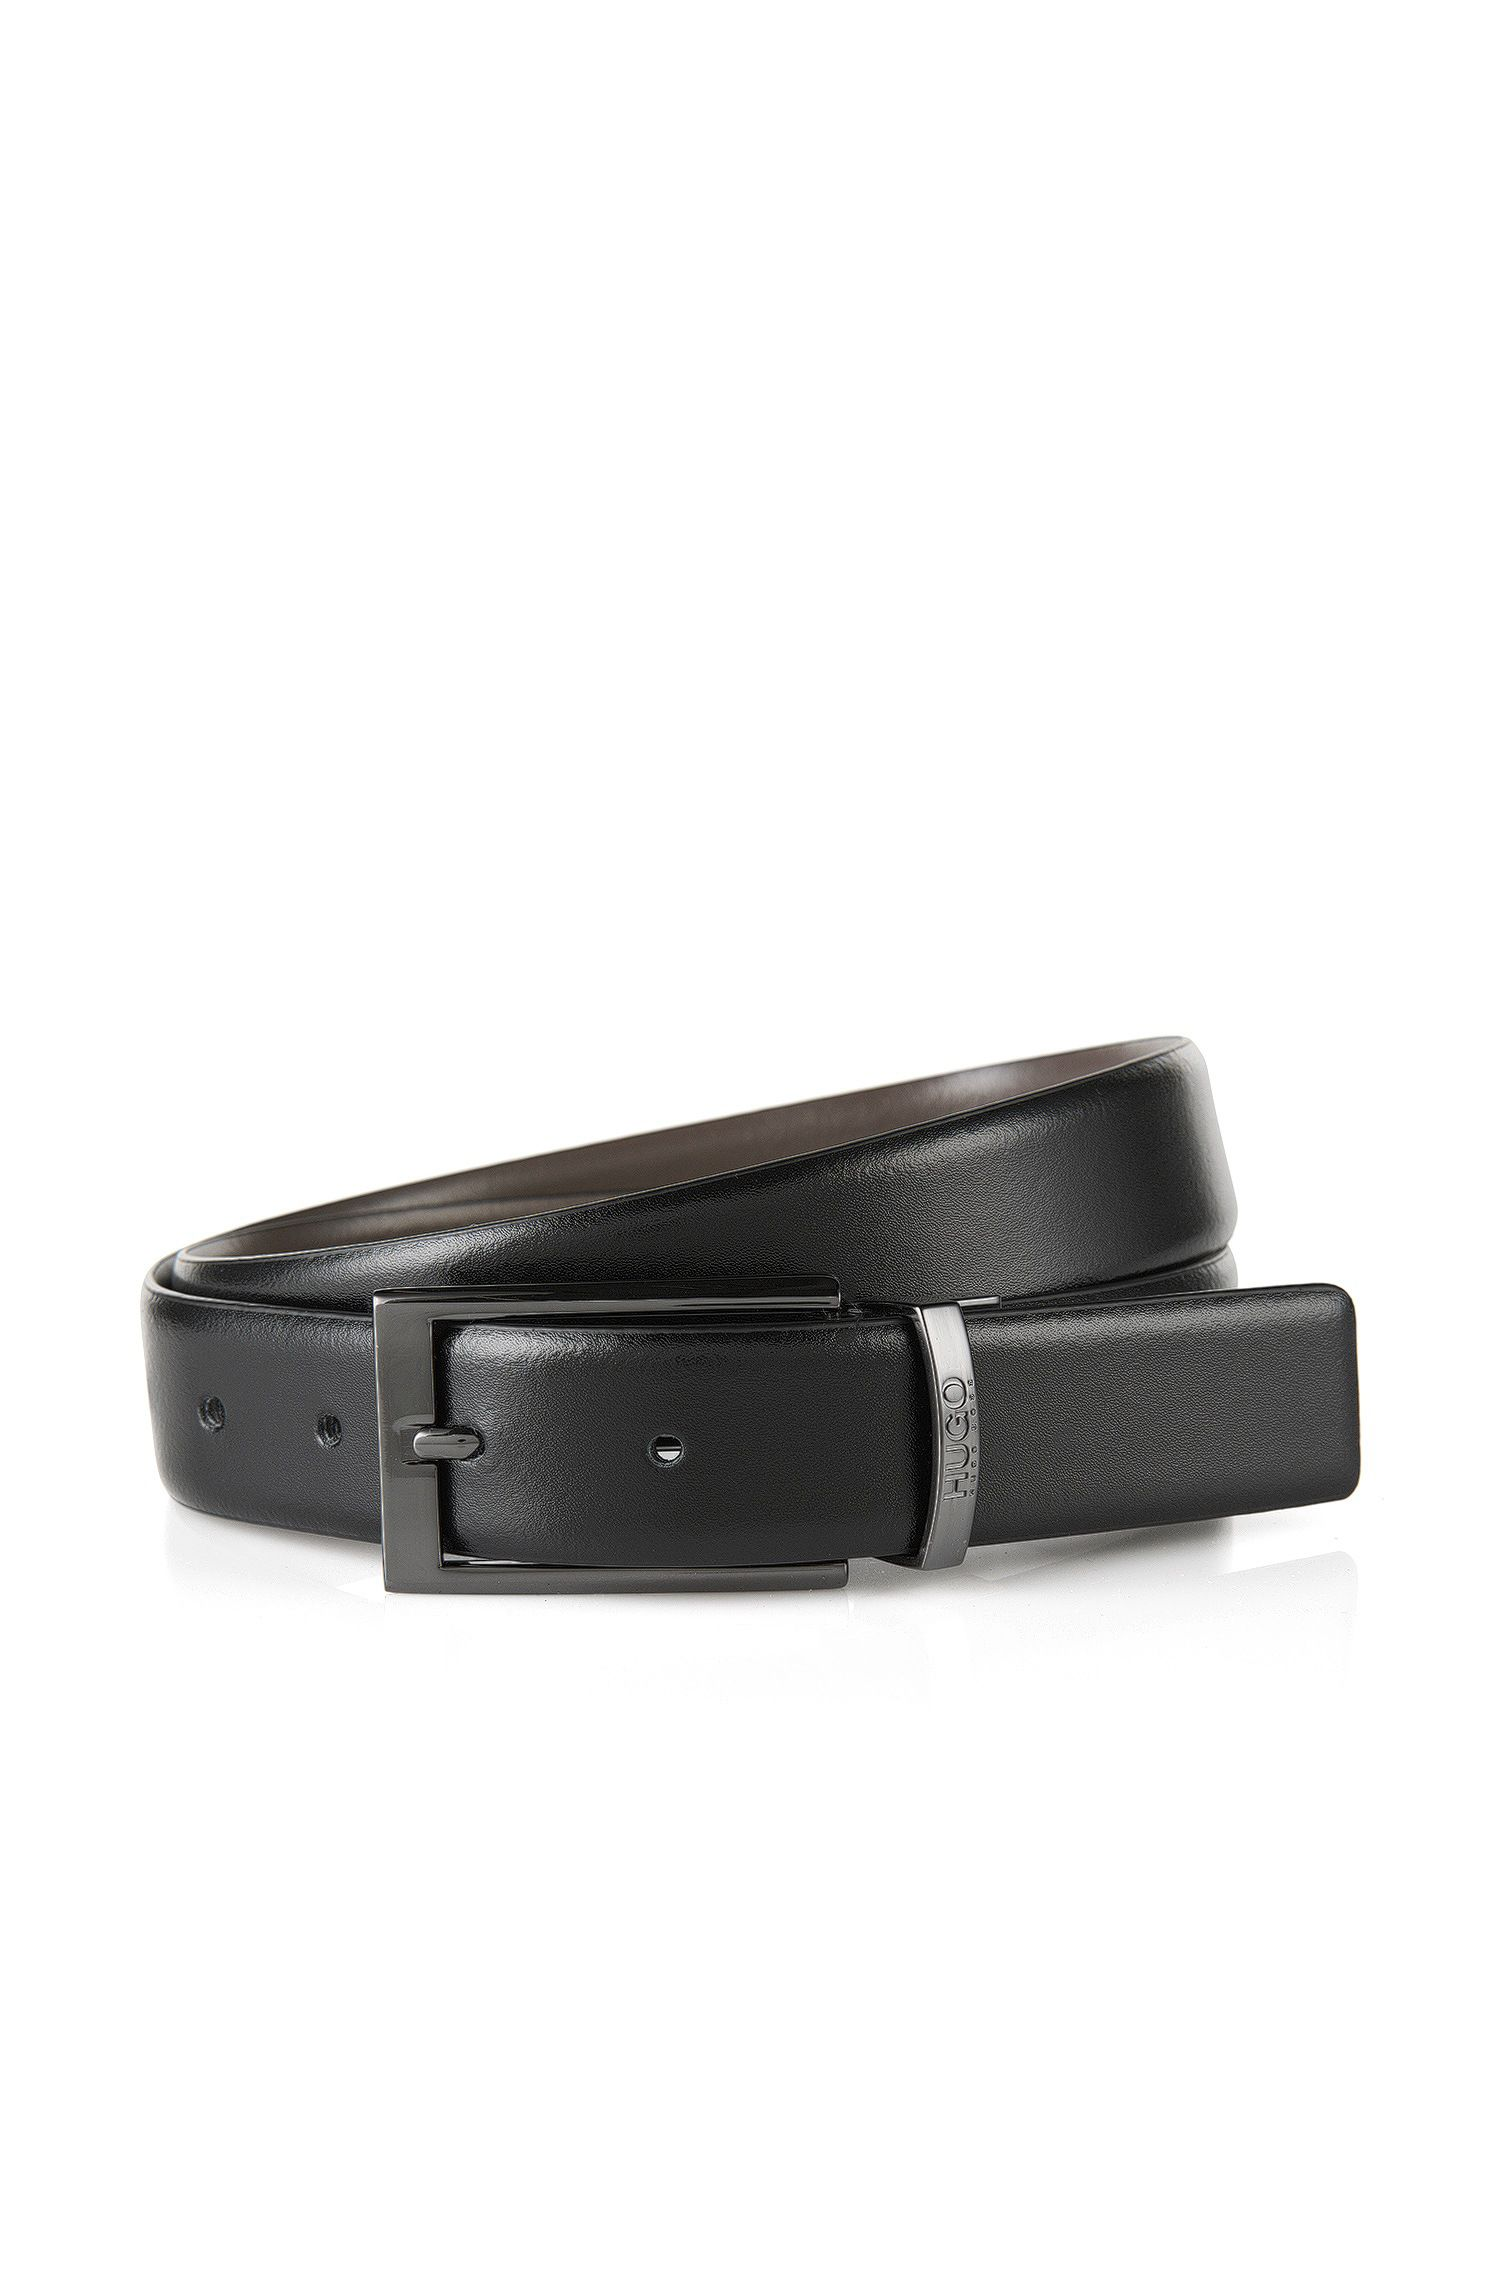 Smooth leather reversible belt with gunmetal hardware